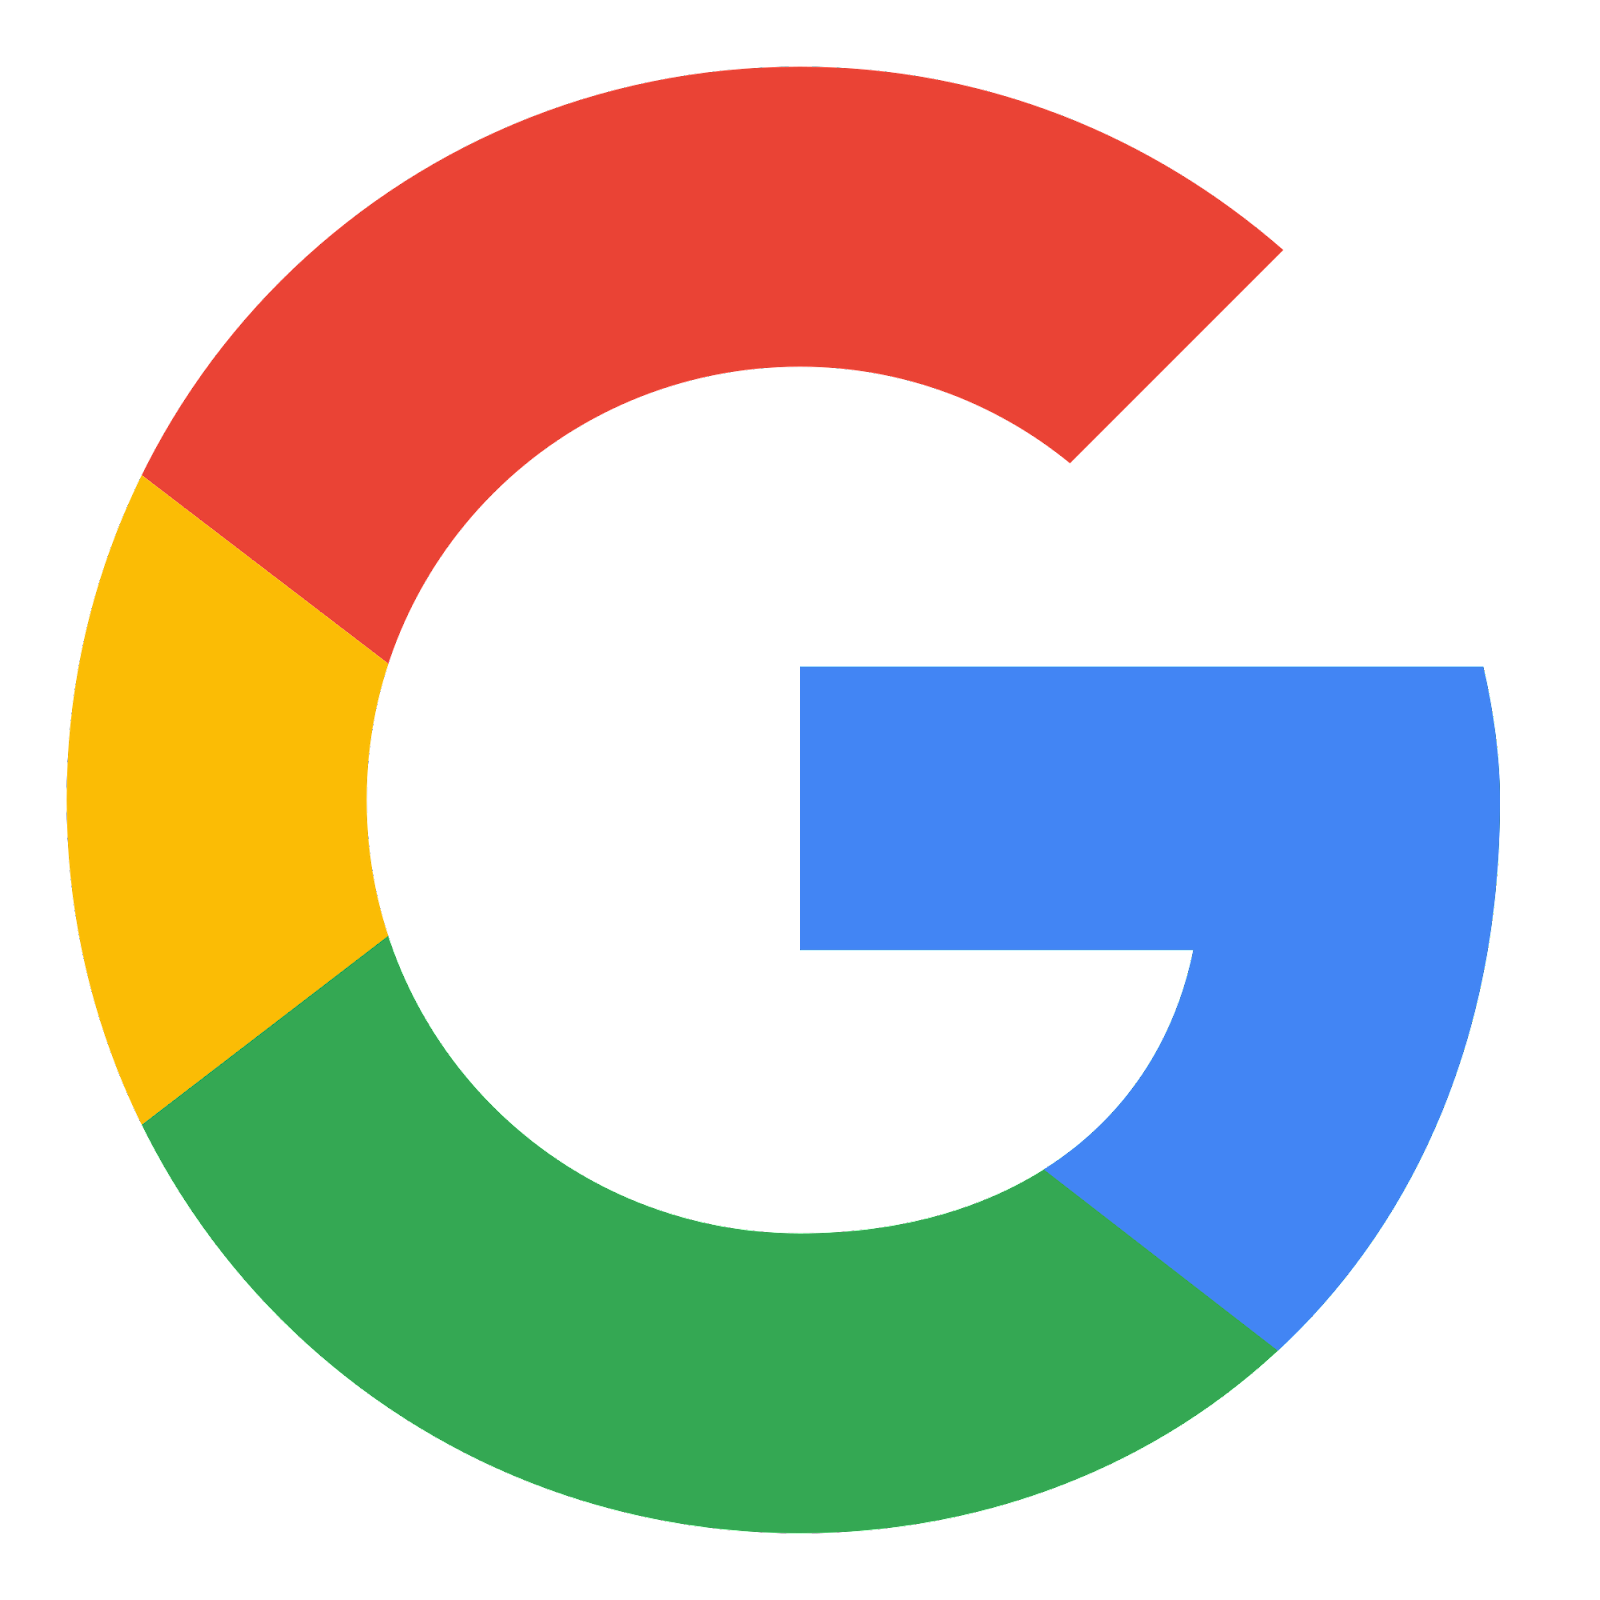 https://upload.wikimedia.org/wikipedia/commons/thumb/5/53/Google_%22G%22_Logo.svg/2000px-Google_%22G%22_Logo.svg.png